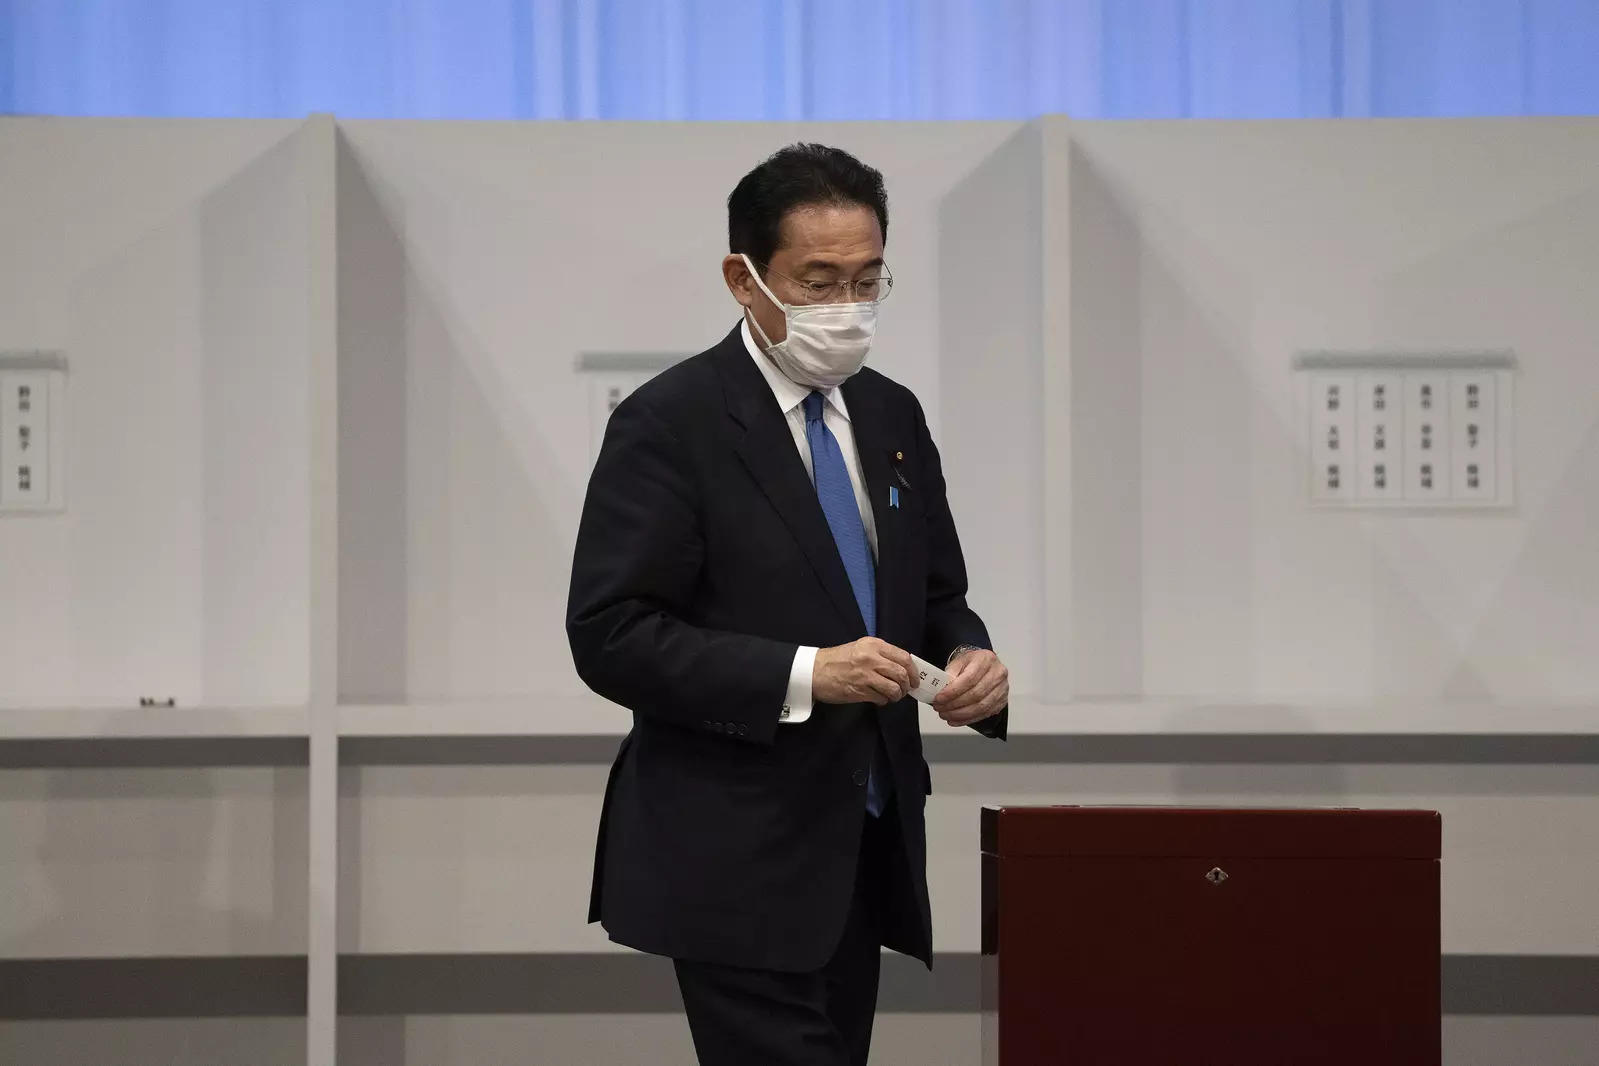 Fumio Kishida to become Japan's next PM after party vote